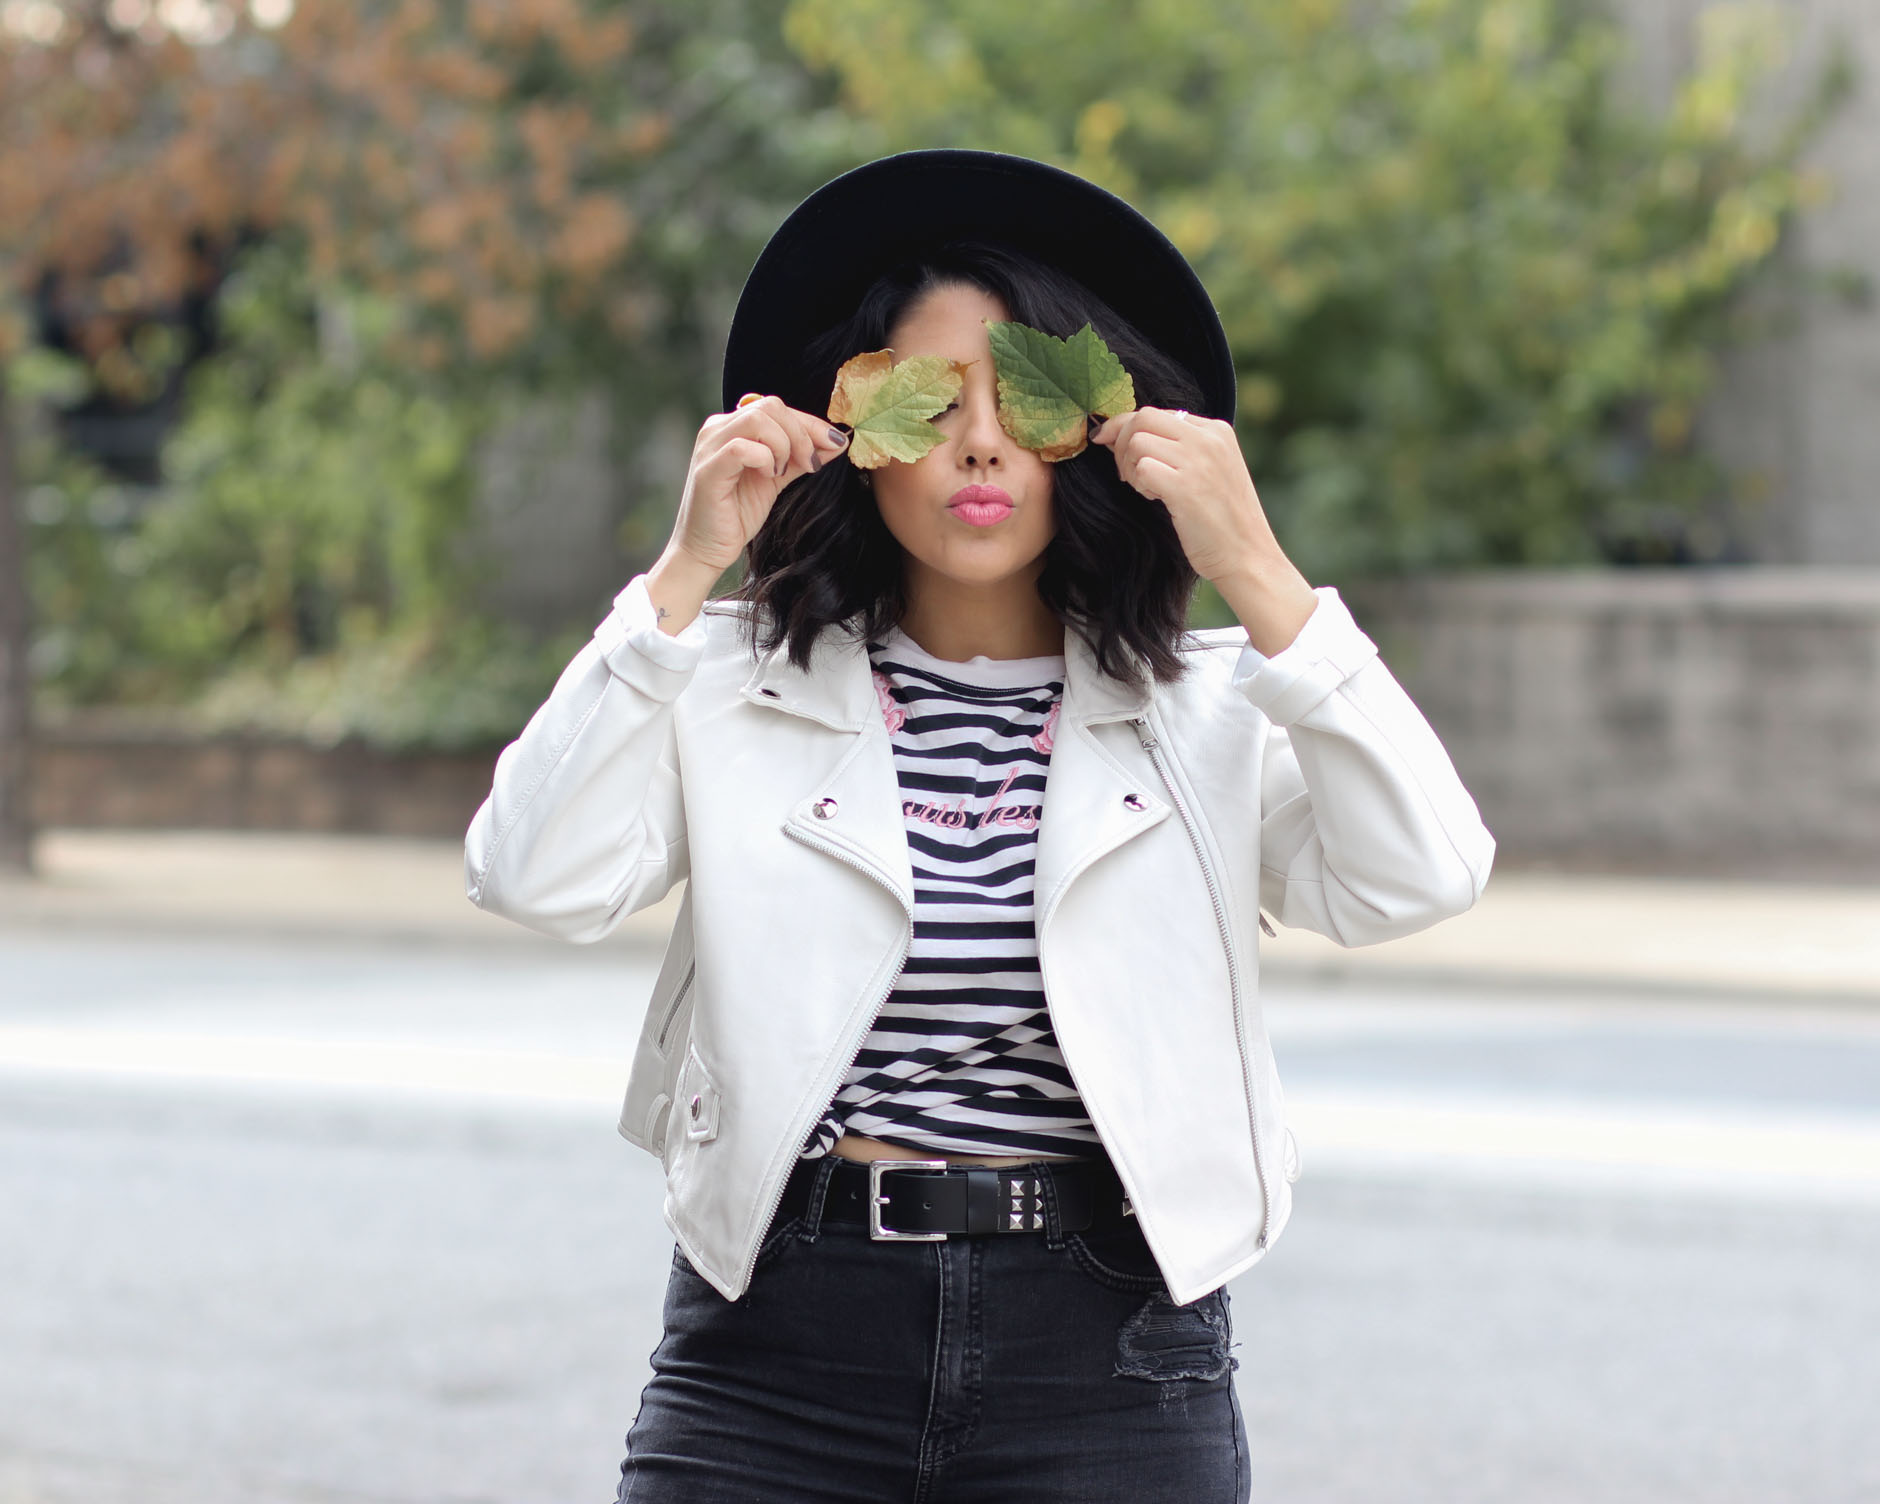 lifestyle blogger naty michele wearing a white faux leather jacket and holding leaves